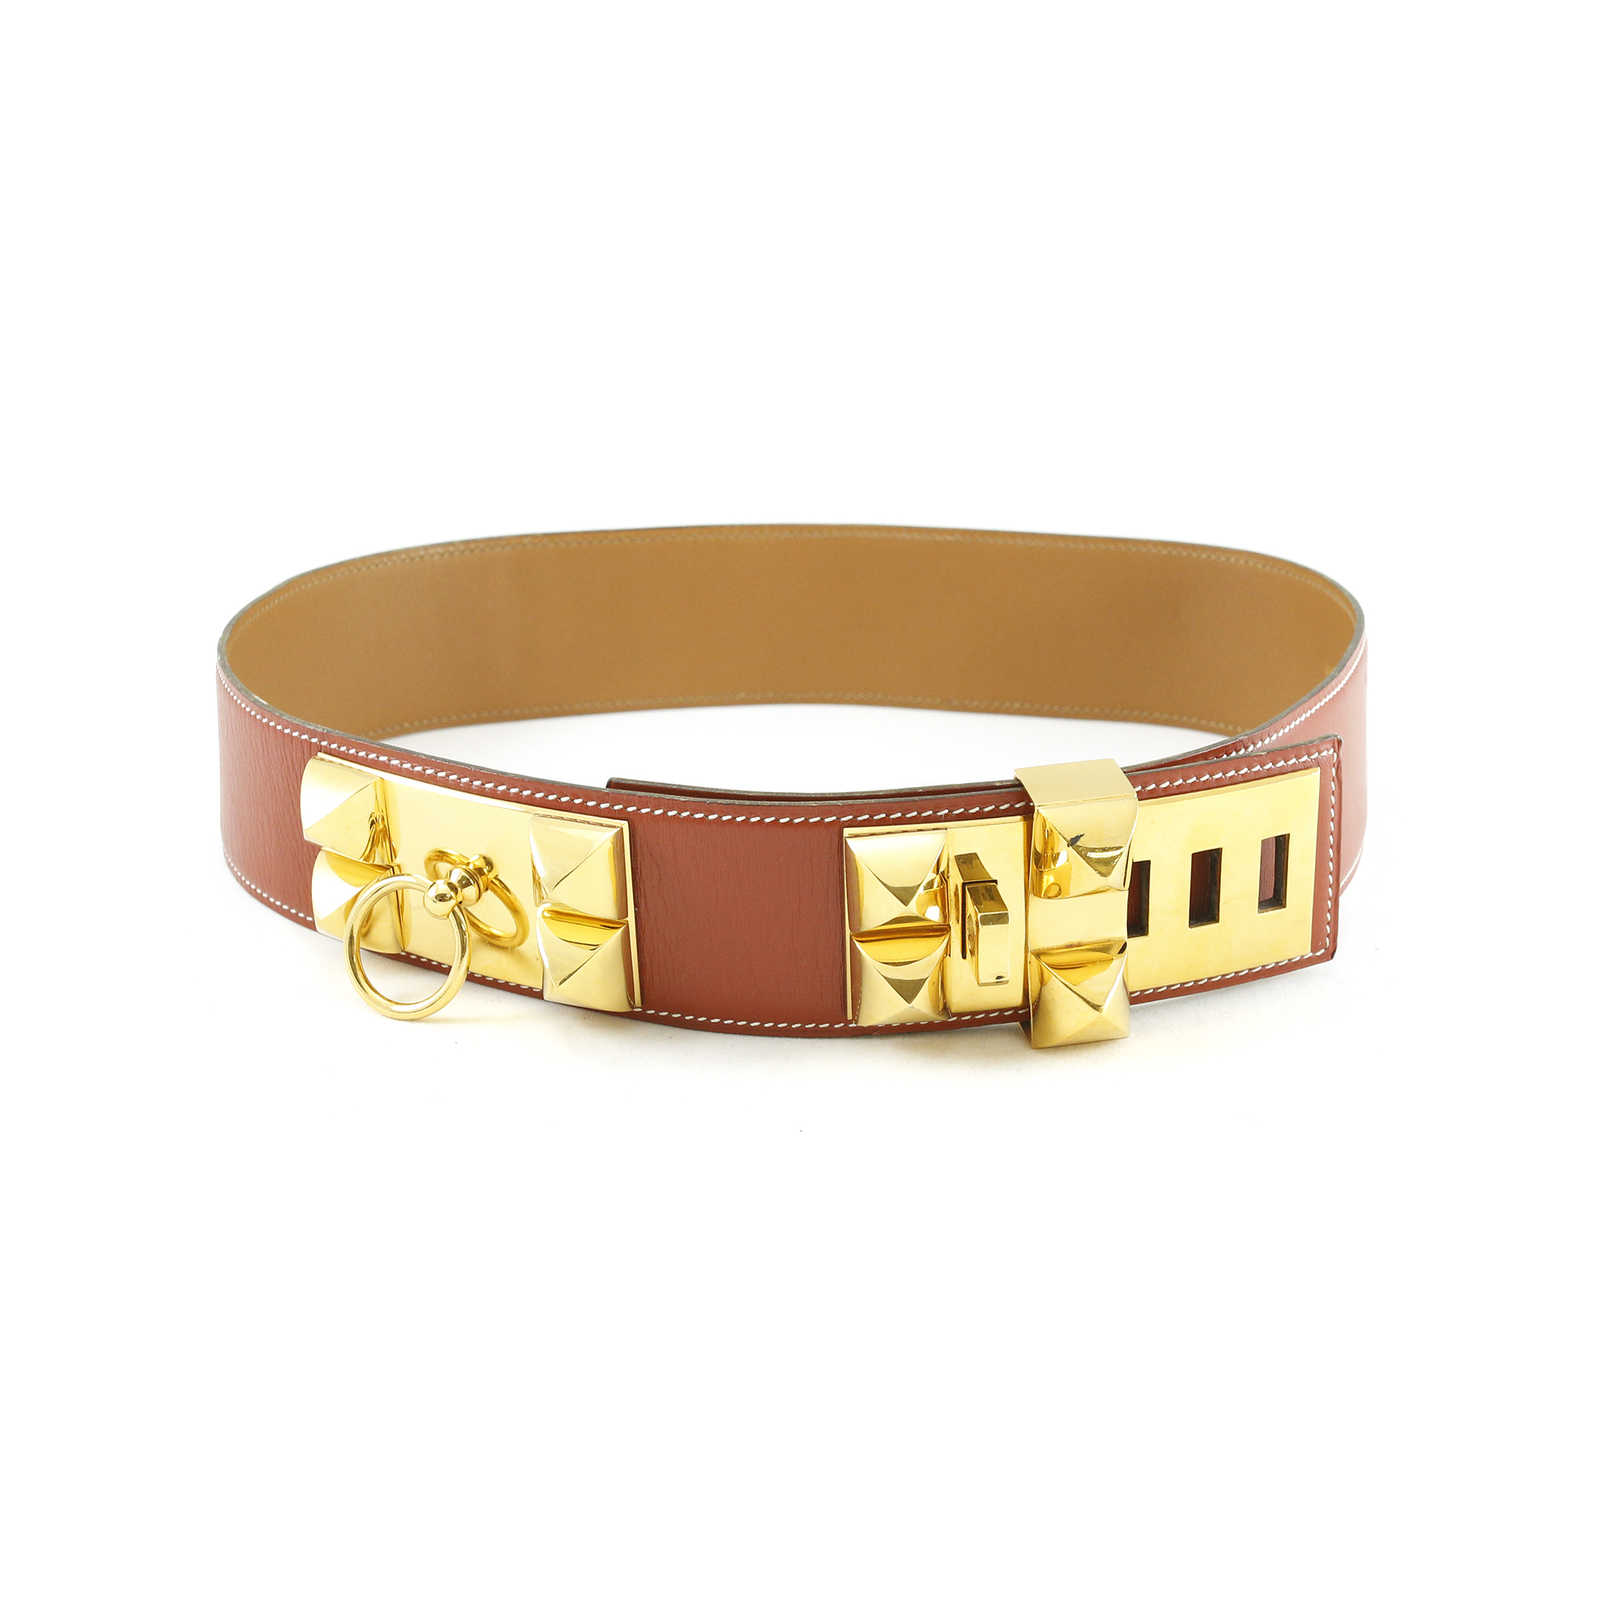 Official Hermes Belt Thread | Page 115 - PurseForum